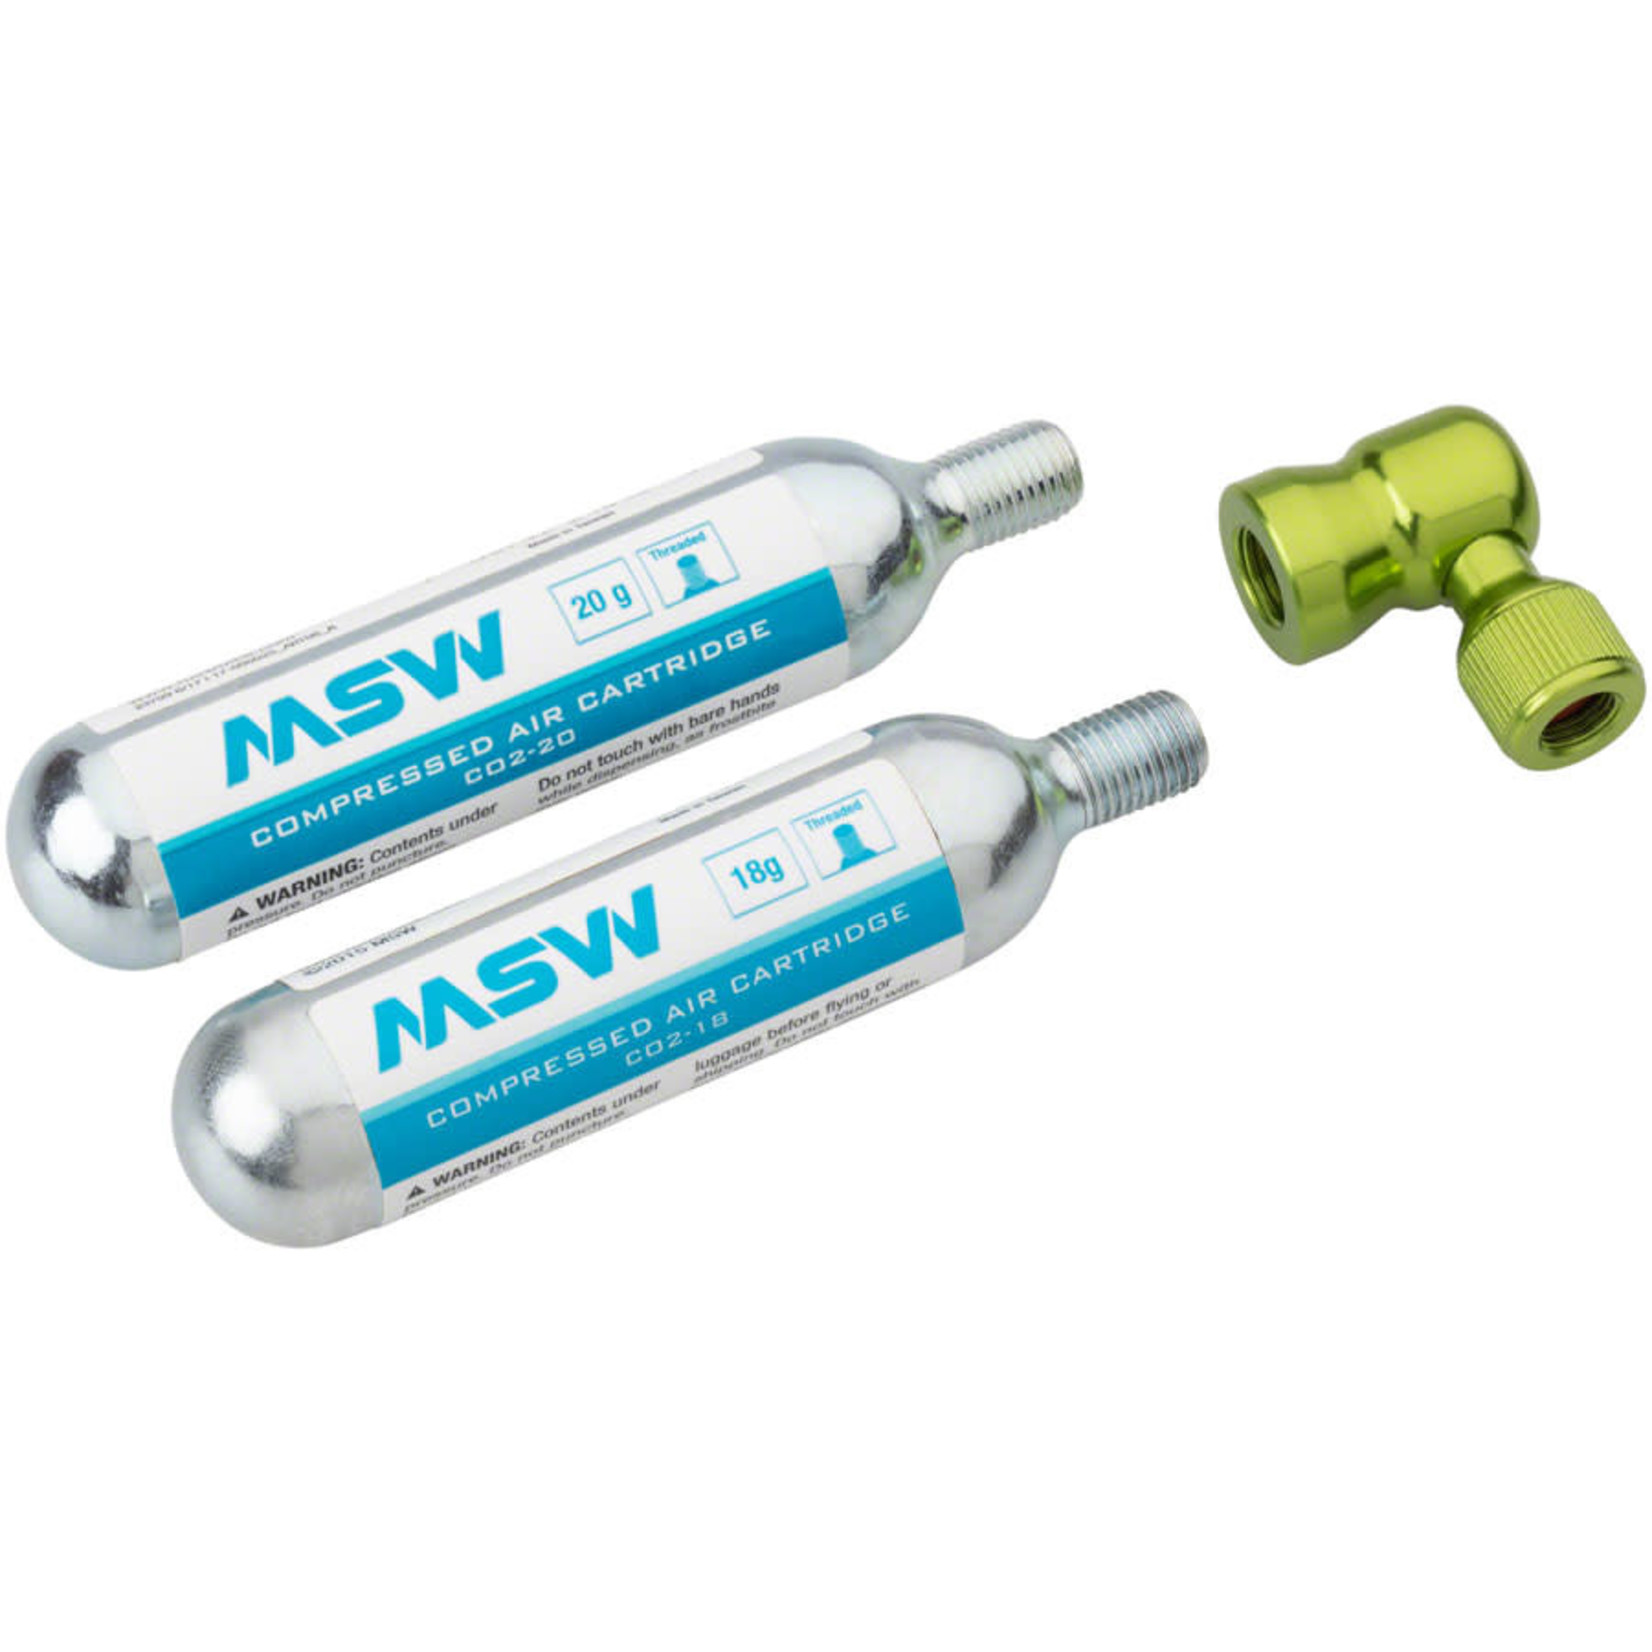 MSW MSW Windstream Twist 20 Kit with two 20g CO2 Cartridges